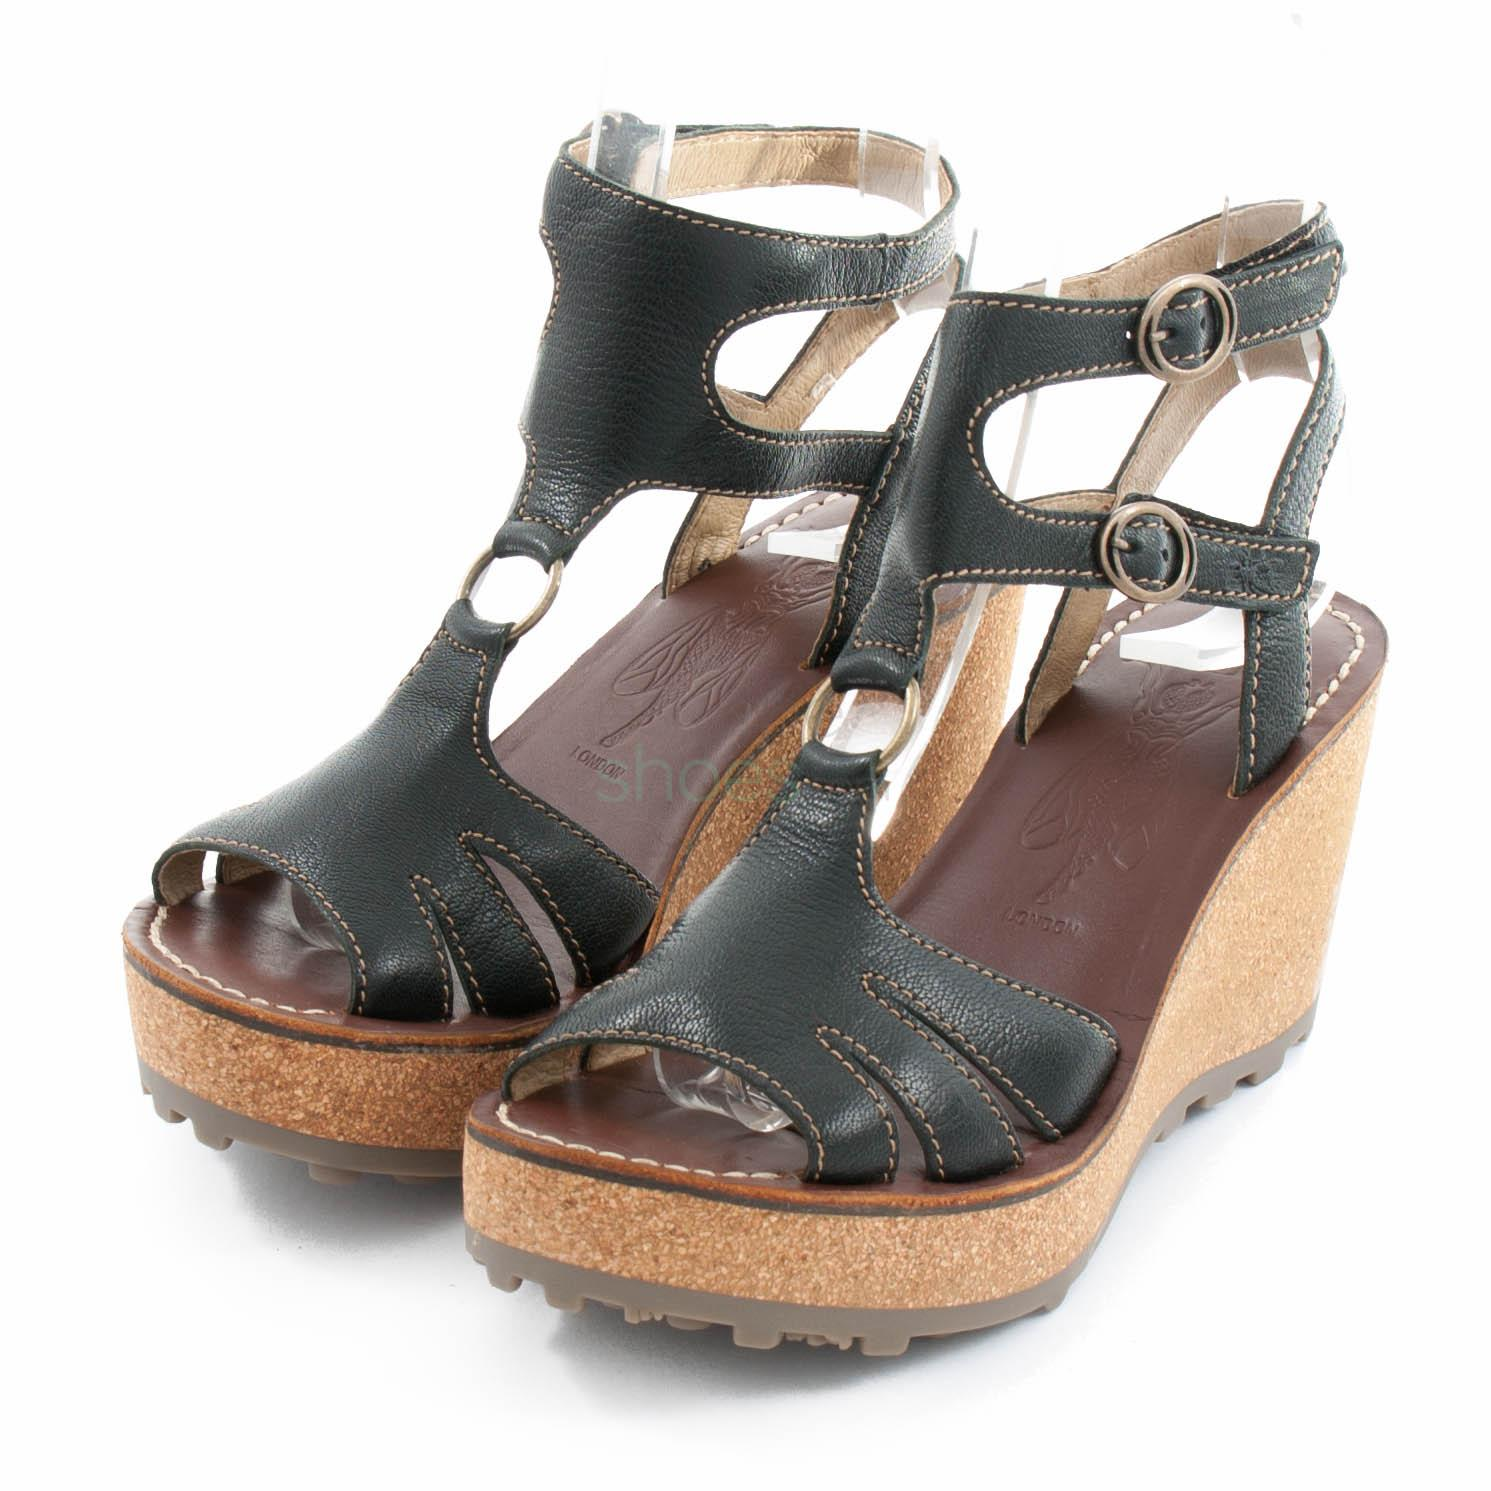 252a07c215fdb Buy your Sandals FLY LONDON Glam Gabs263 Black P144263002 here ...